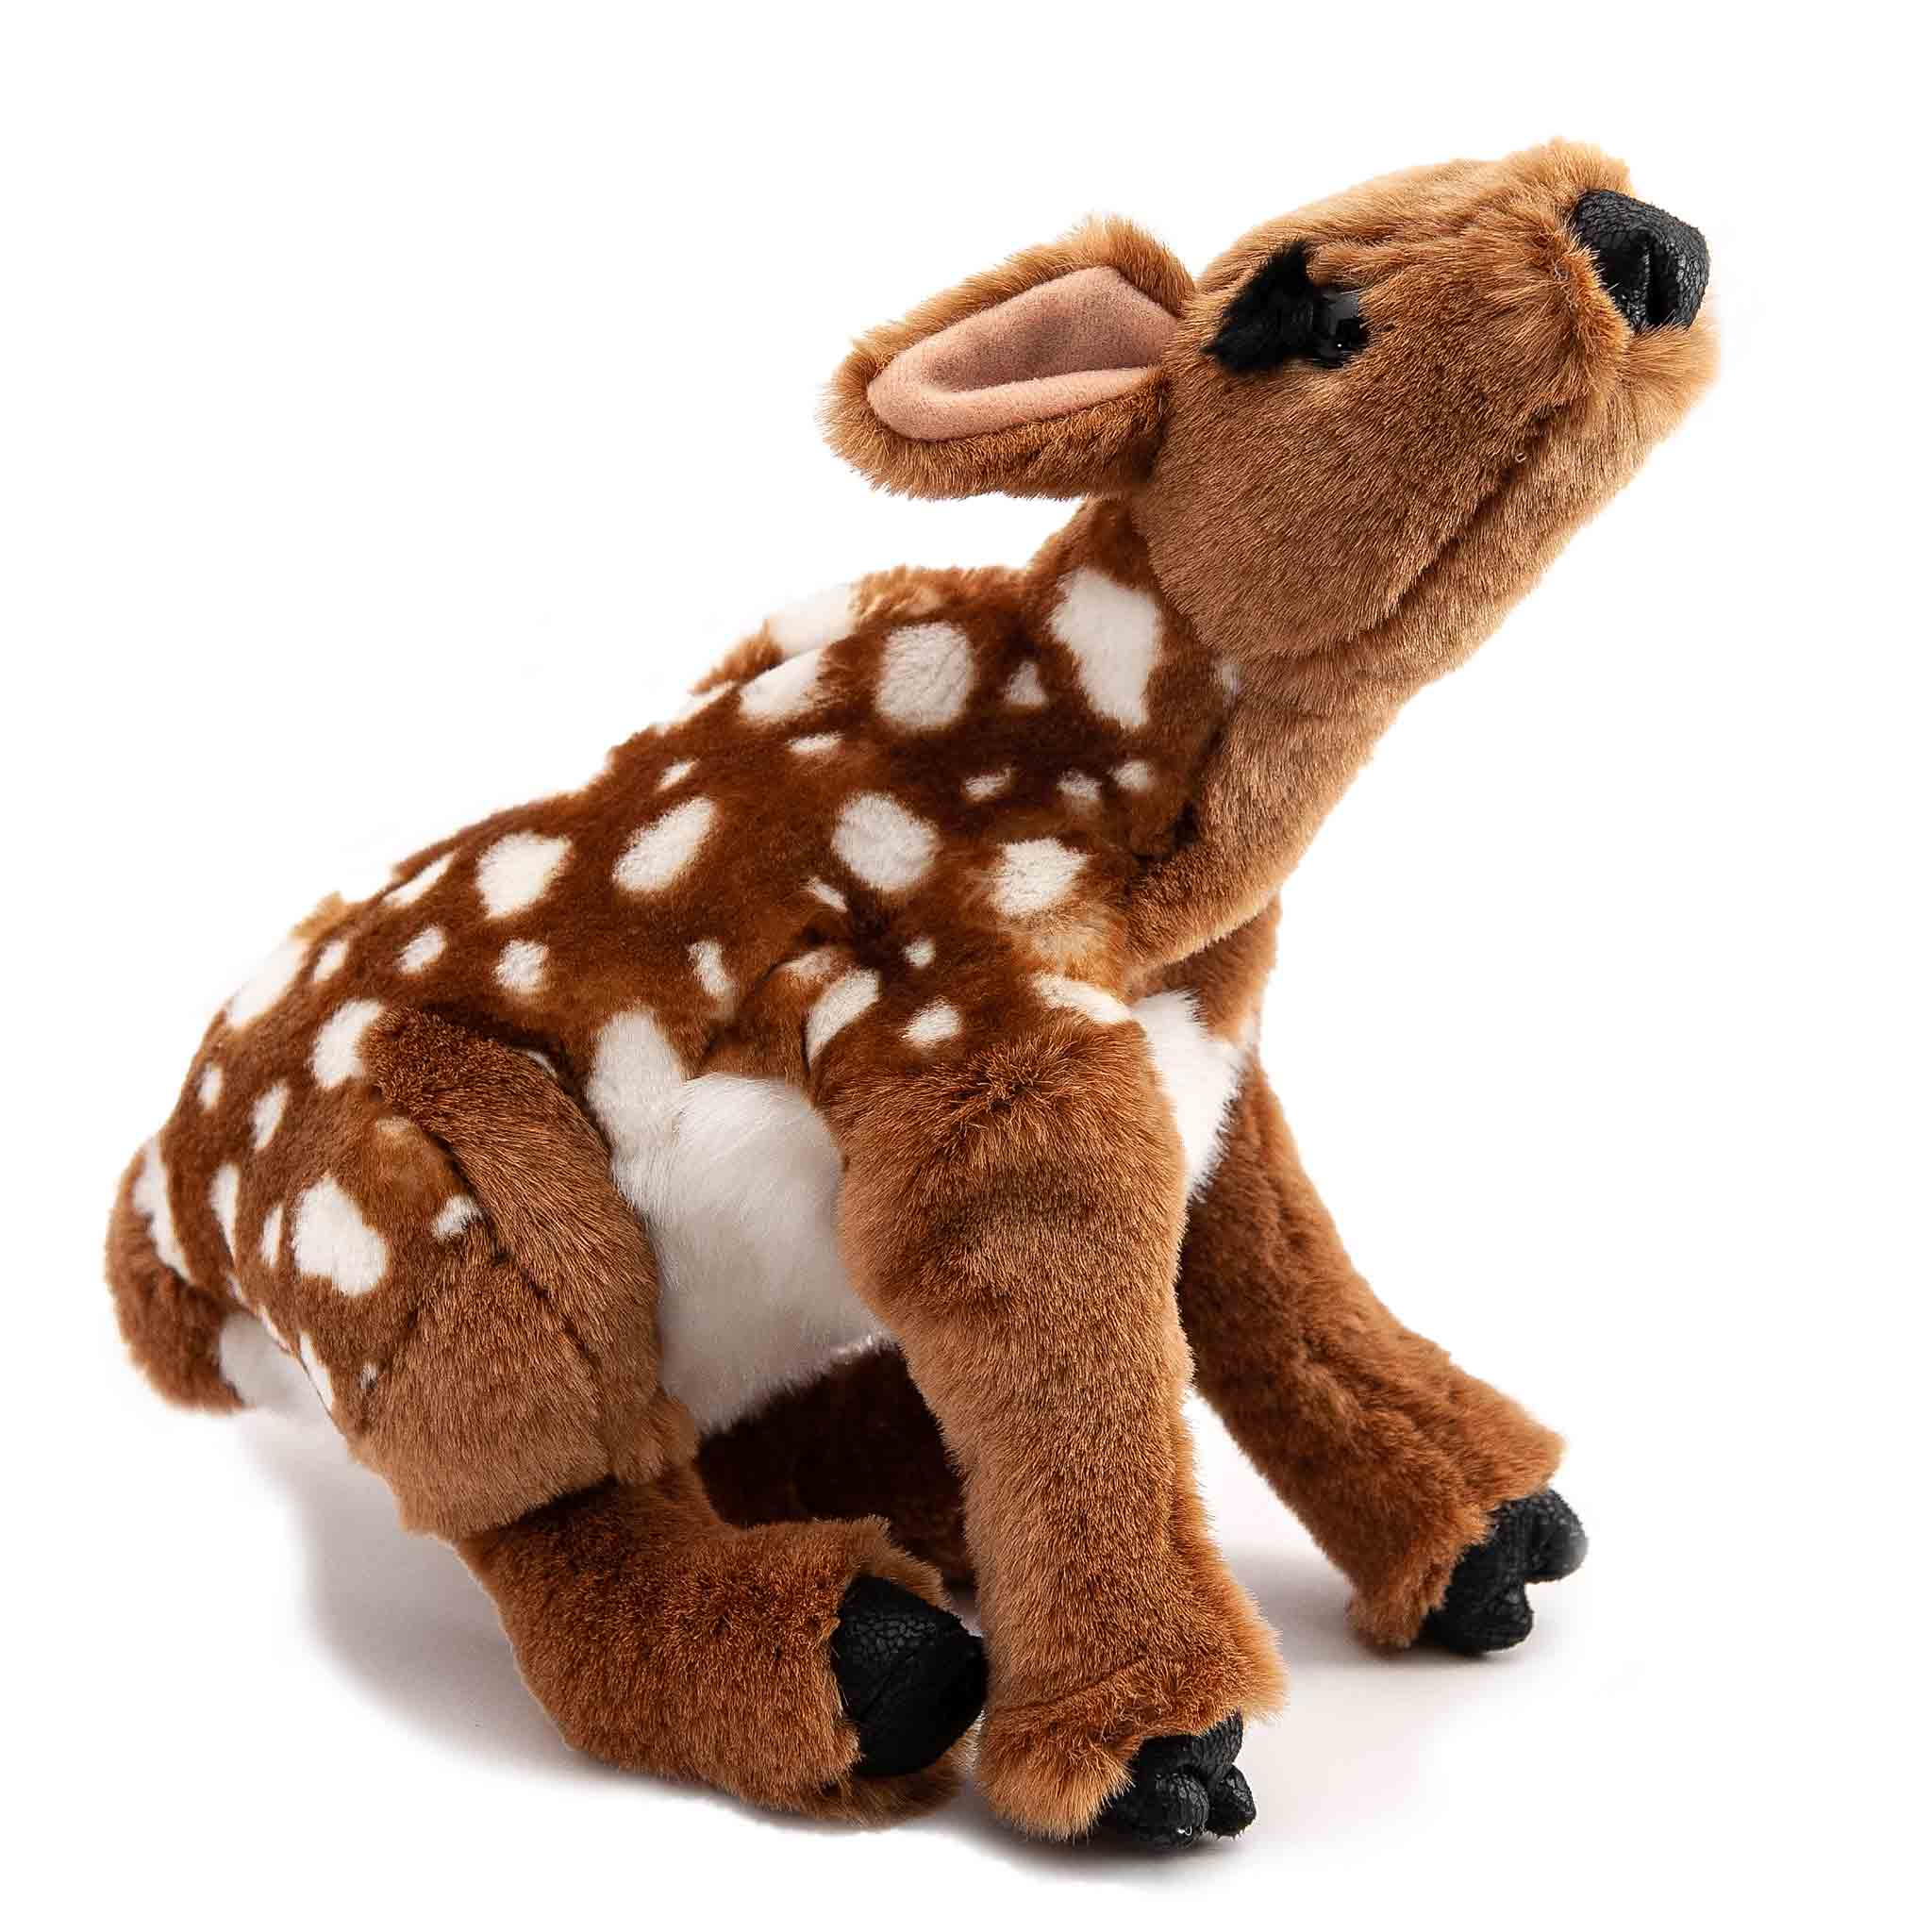 folkmanis fawn puppet with white spots